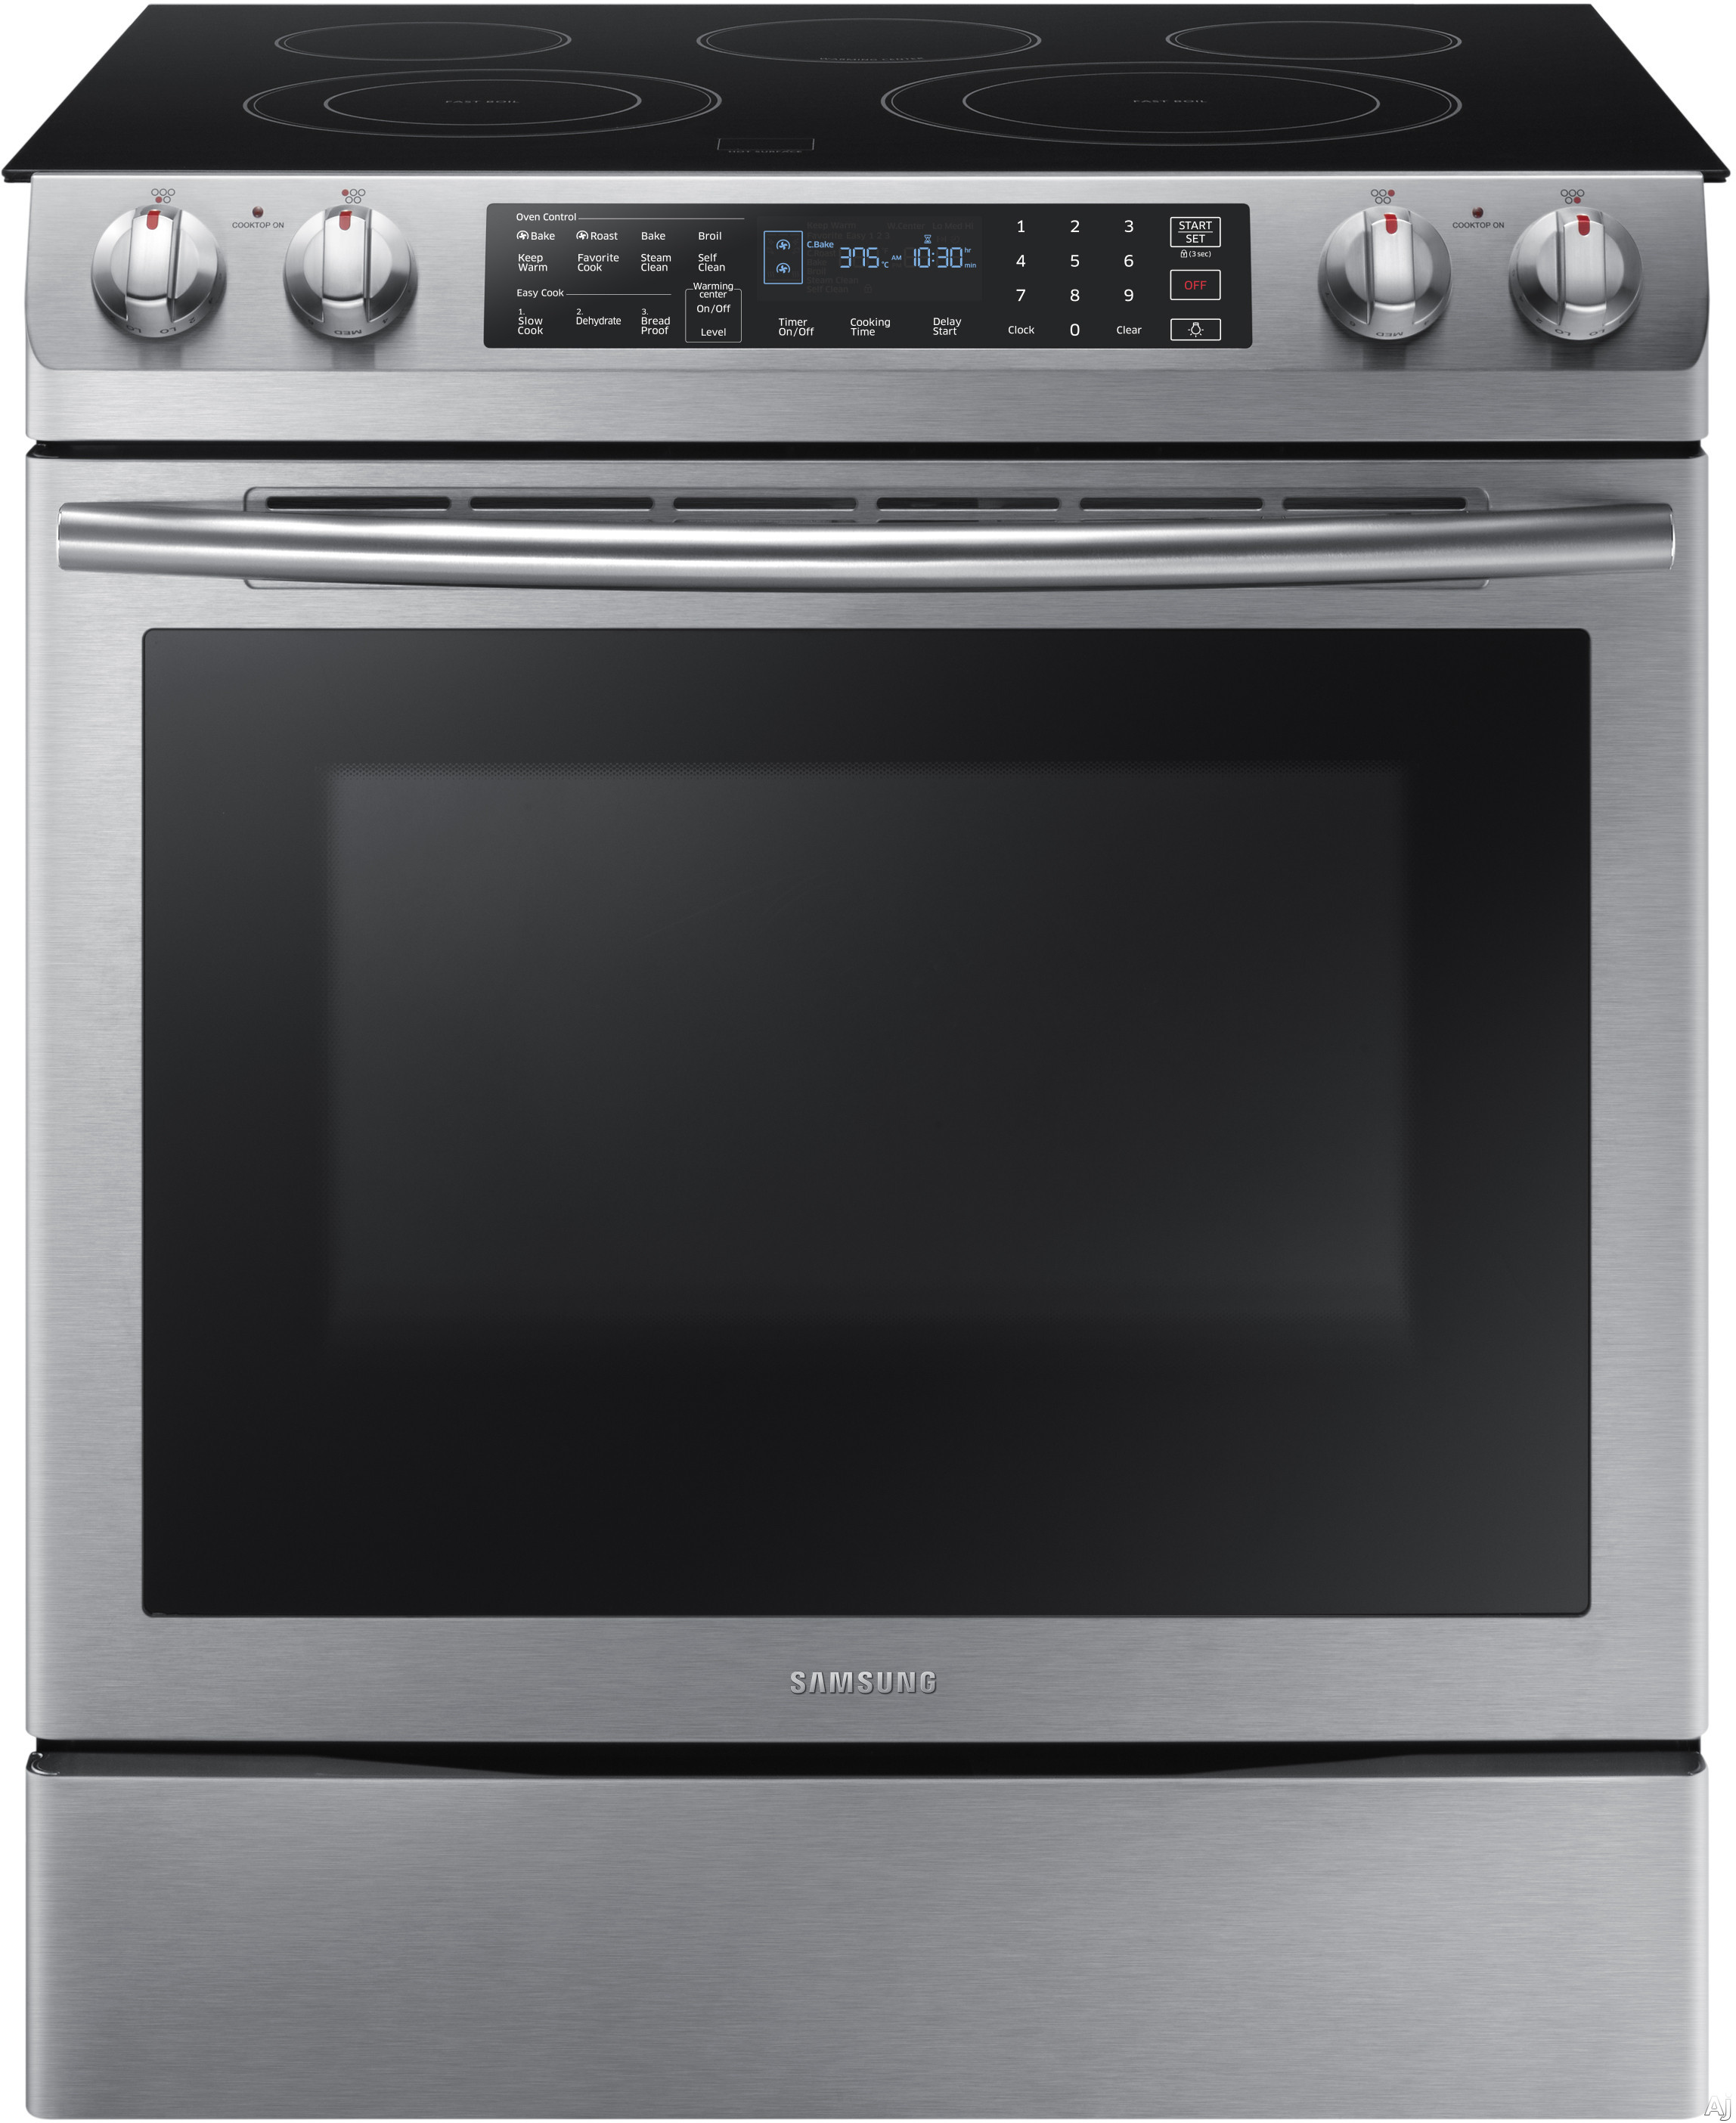 Samsung NE58K9430SS 30 Inch Slide-in Electric Range with 5 Smoothtop Elements, 5.8 cu. ft. Dual Convection Fan Oven, 2 Flexible Cooktop Elements, Delay Start, Sabbath Mode, Storage Drawer and Steam Se